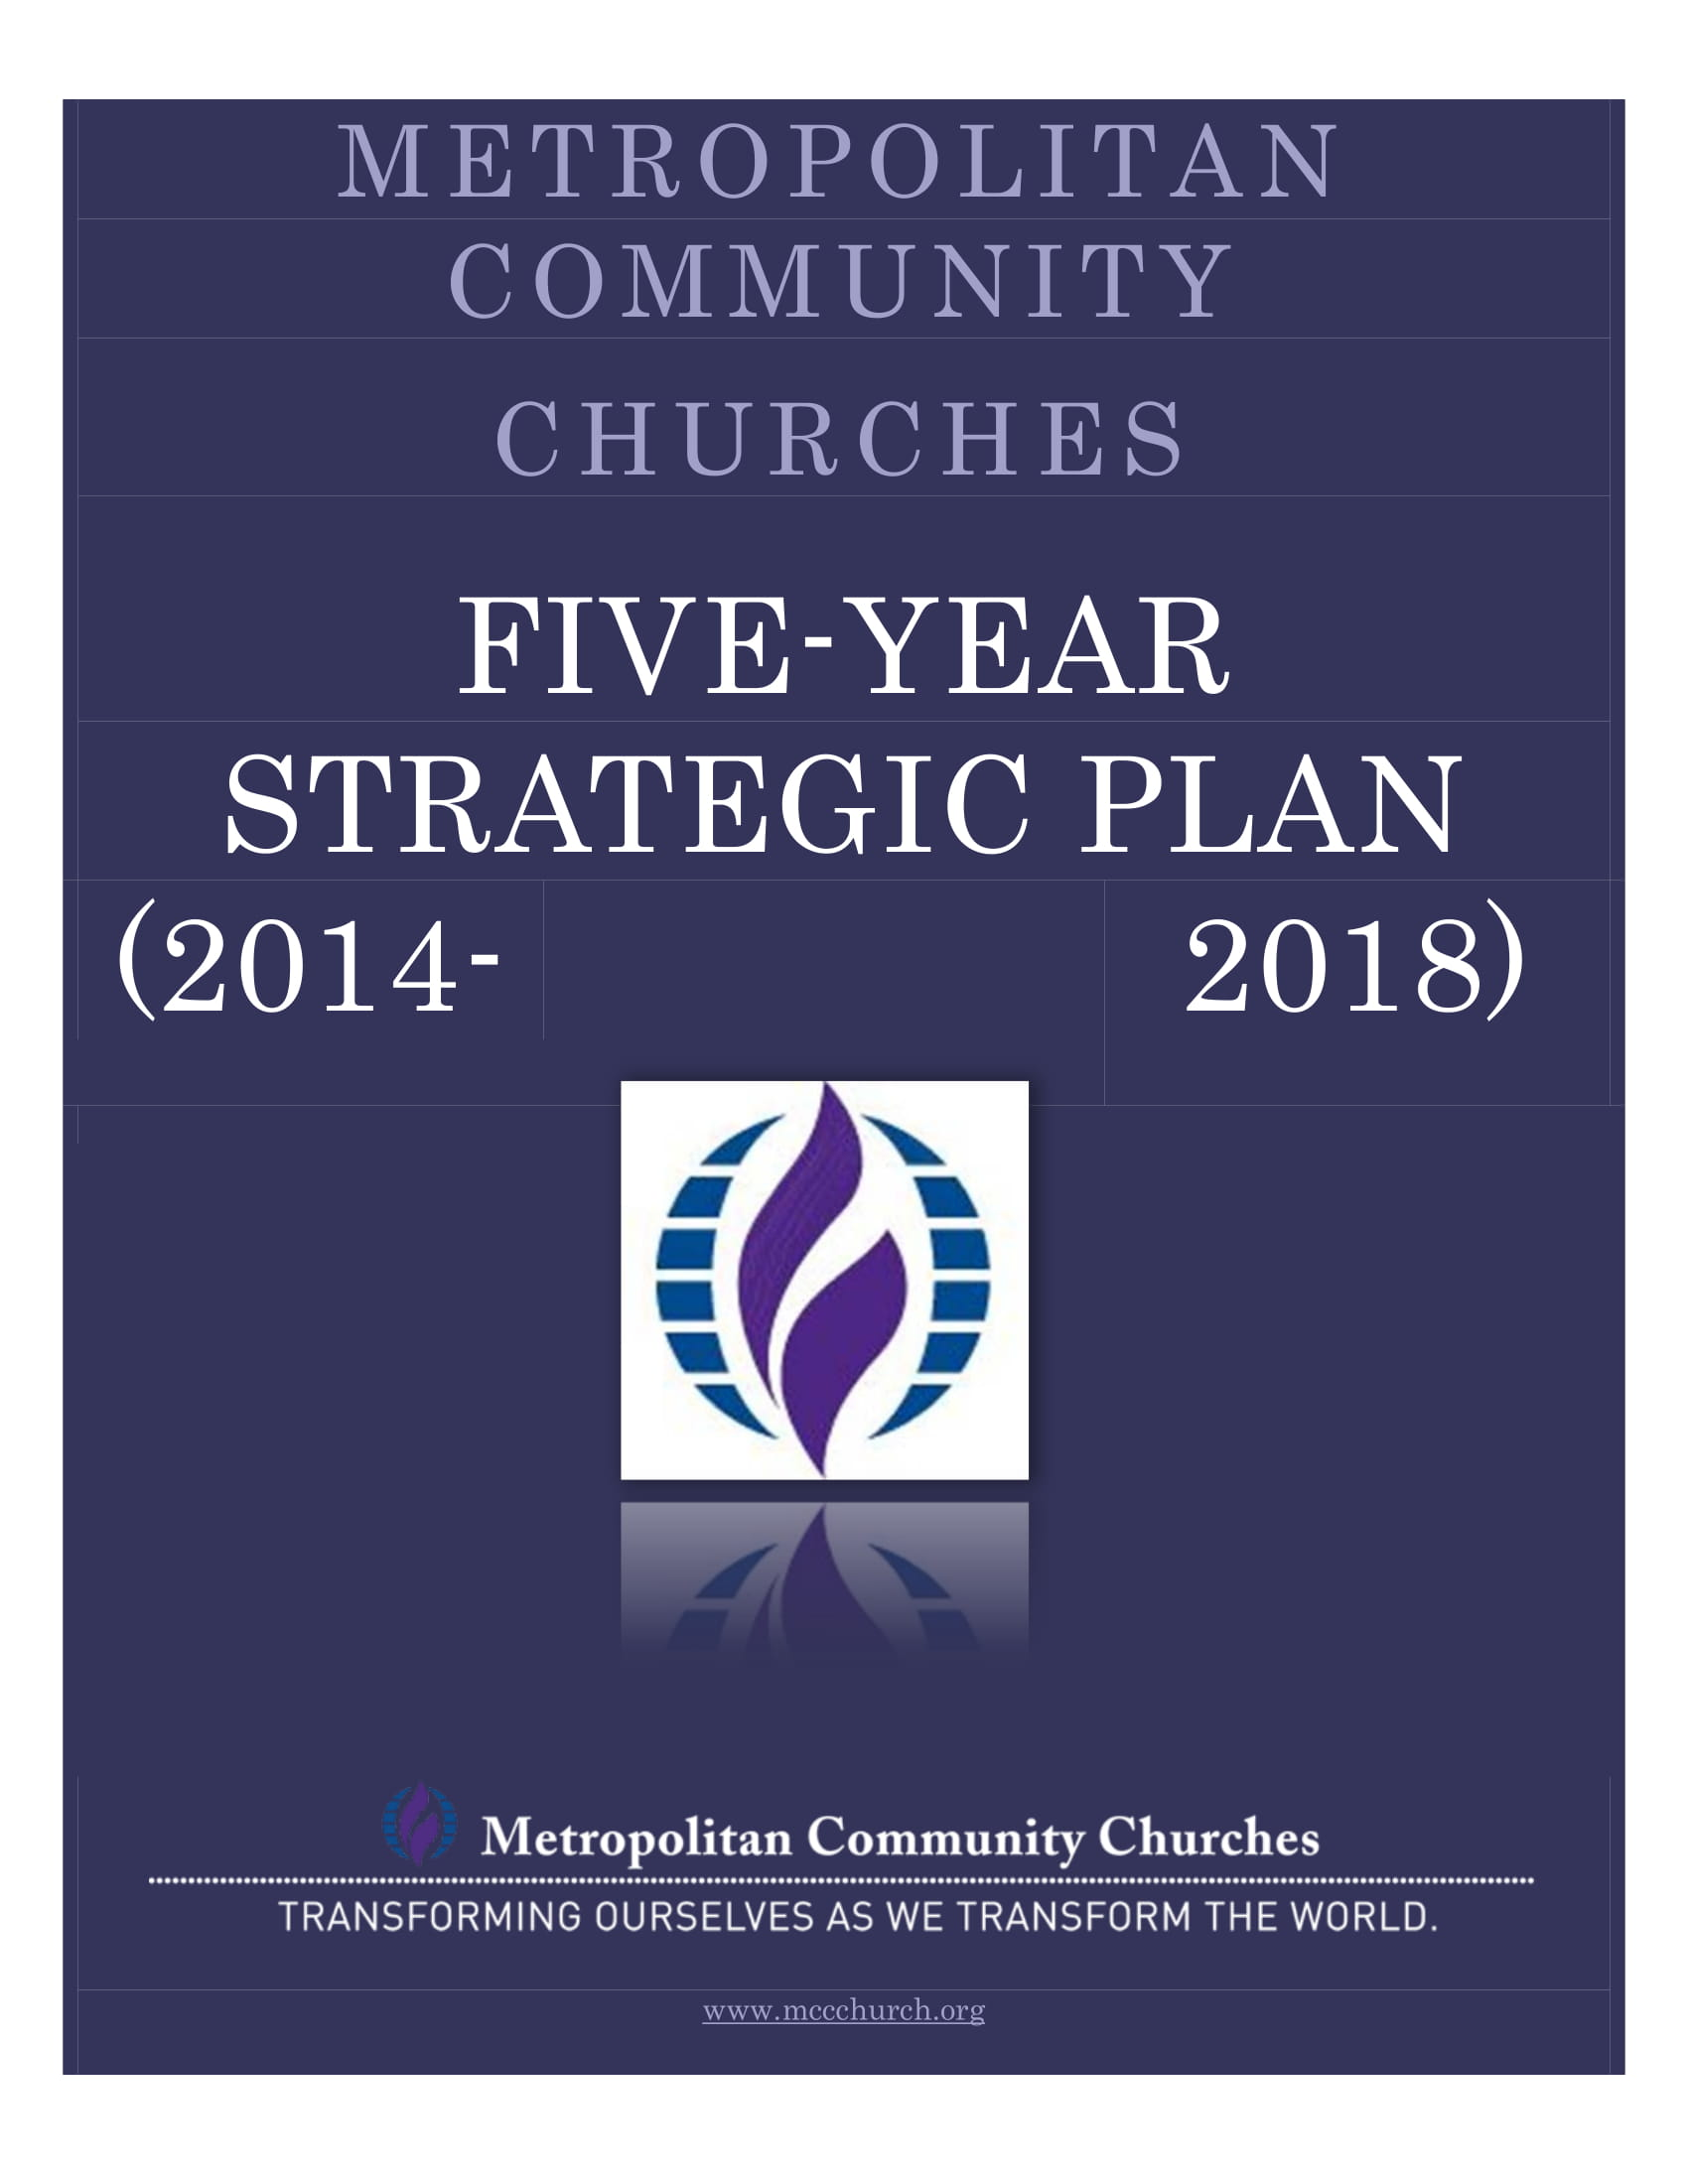 community churches 5 year strategic plan example 01